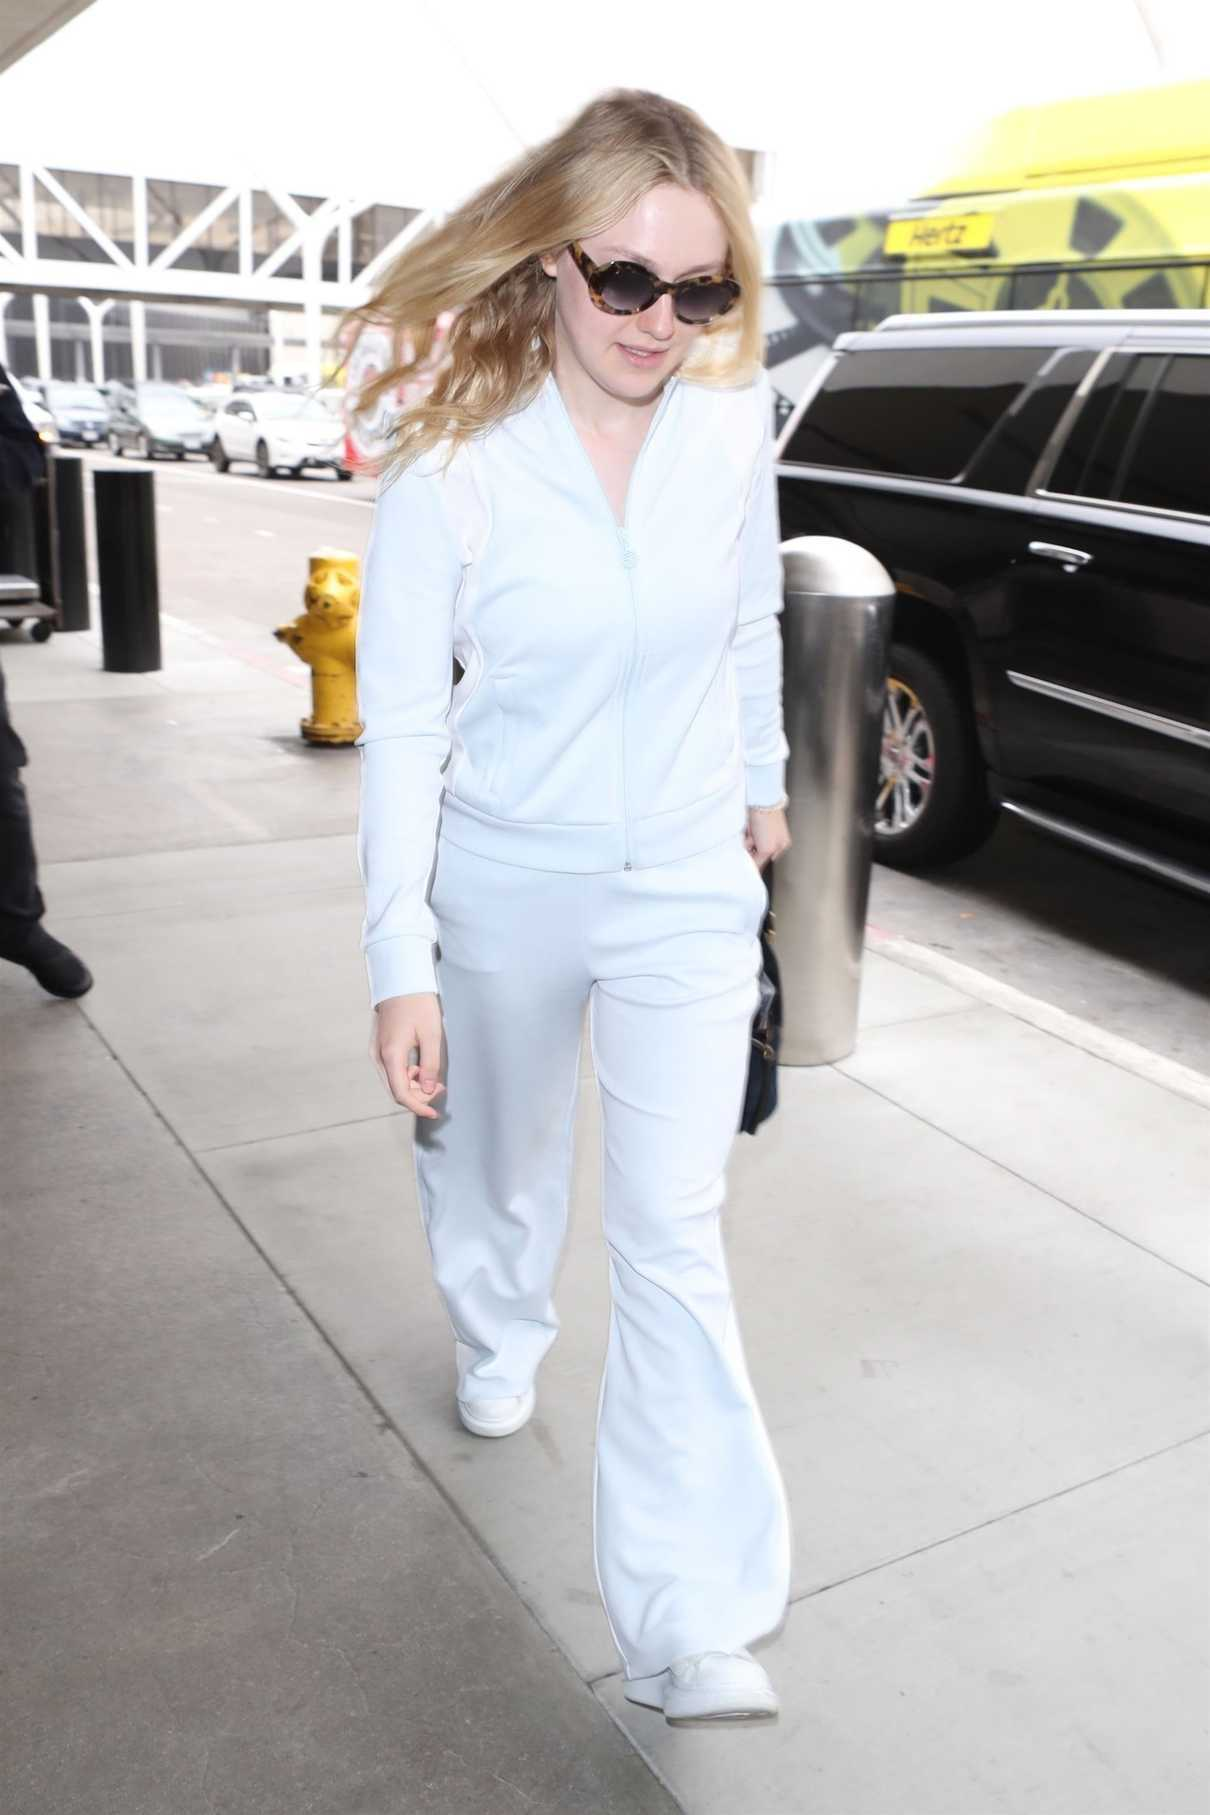 Dakota Fanning Wears All White as She Departs at LAX Airport in LA 05/24/2018-1